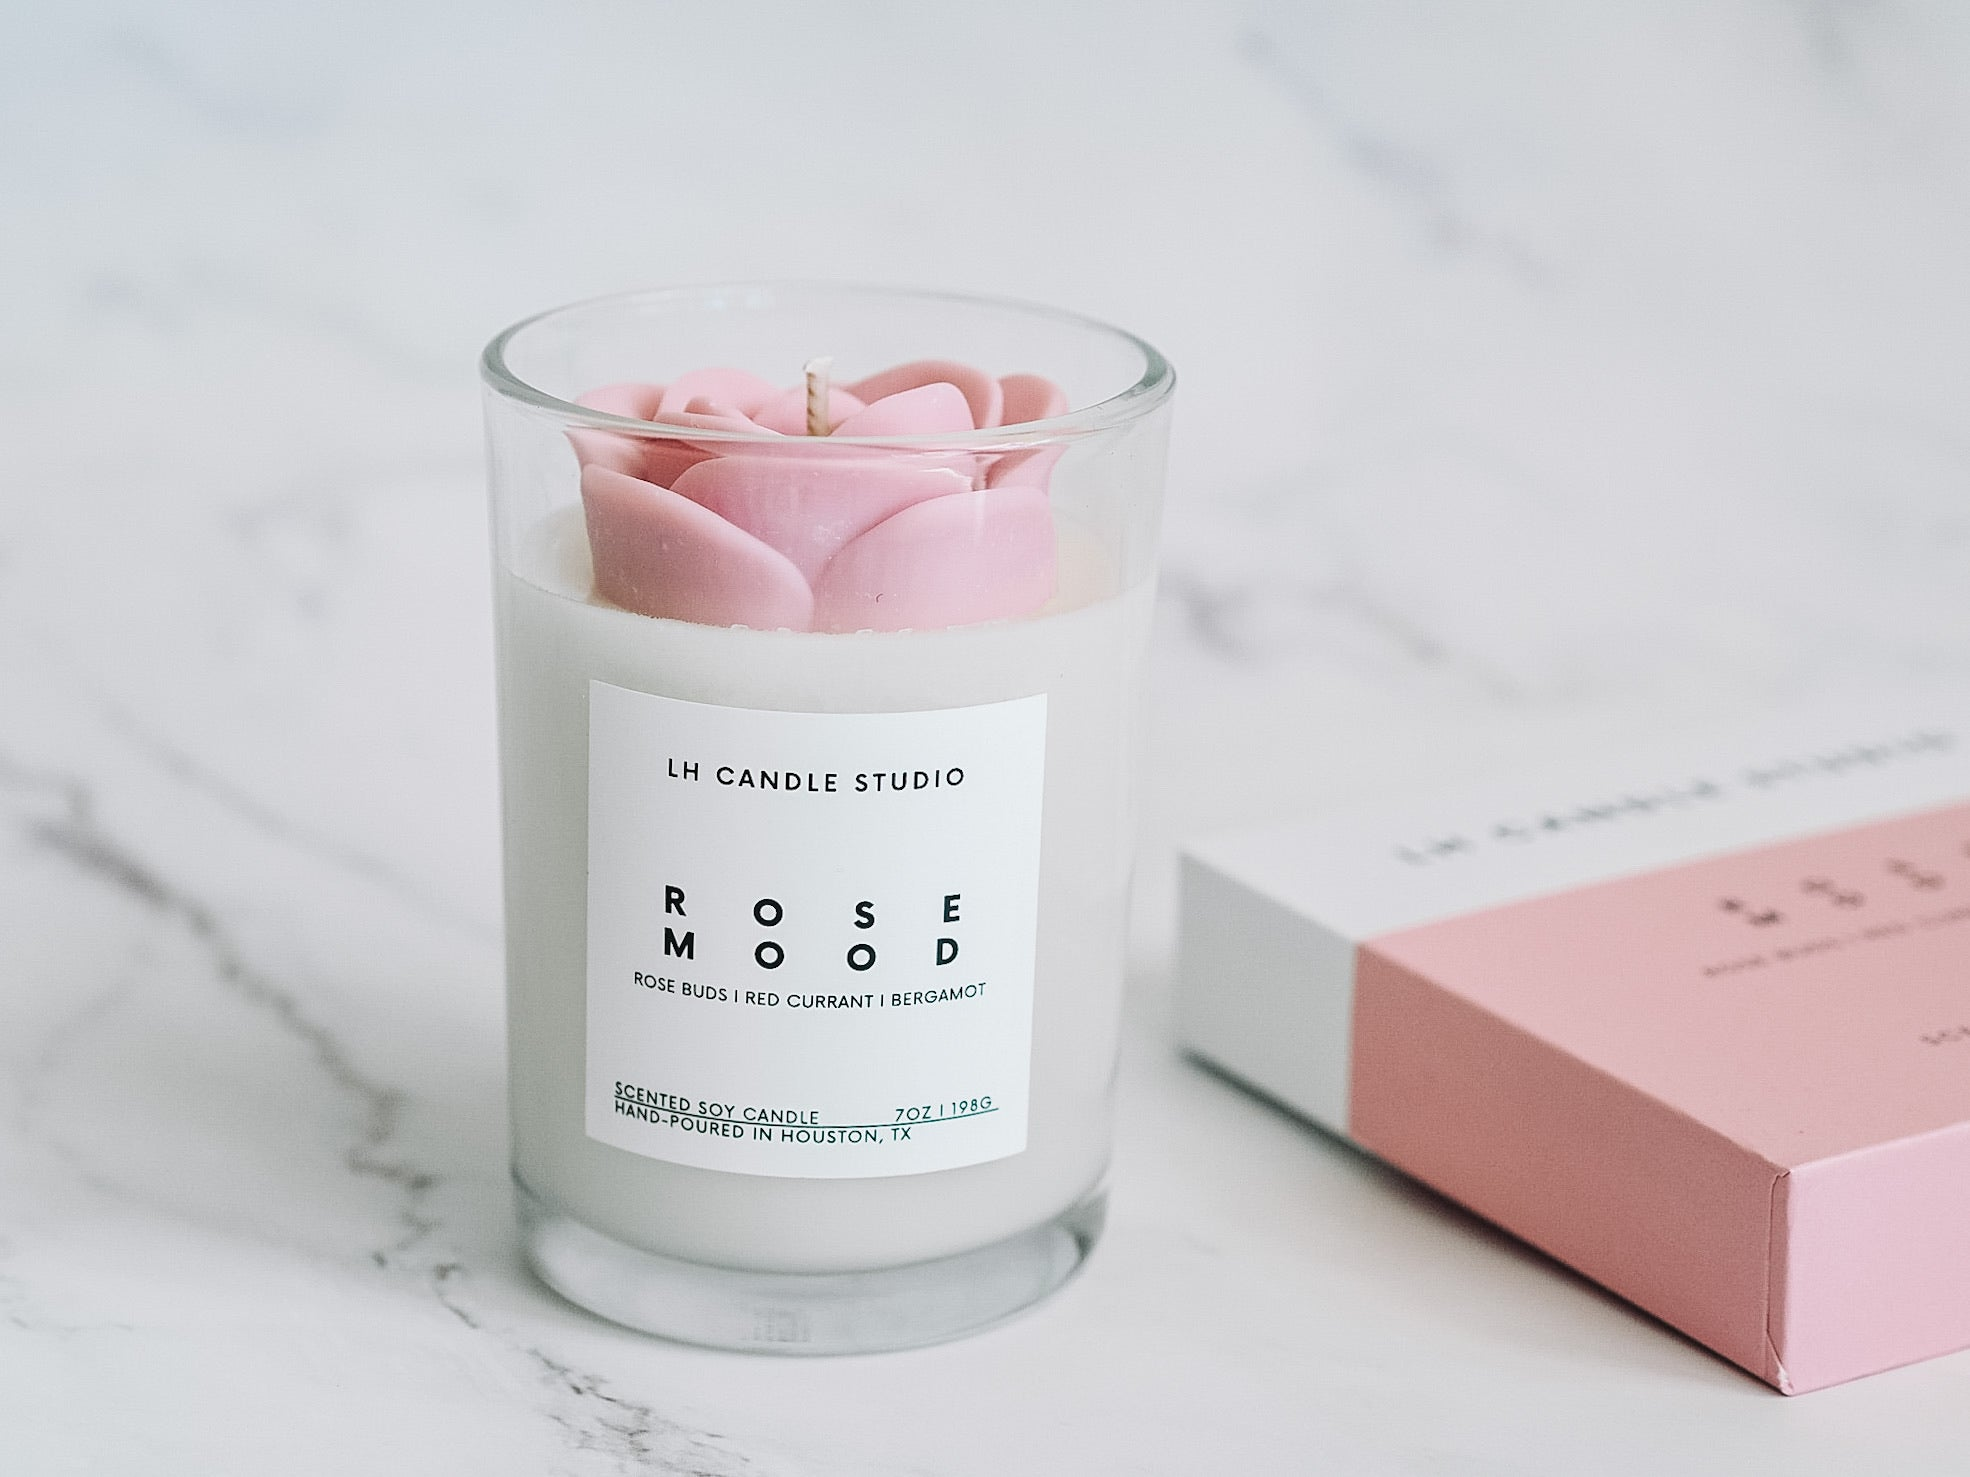 Rose Mood Candle - LH CANDLE STUDIO